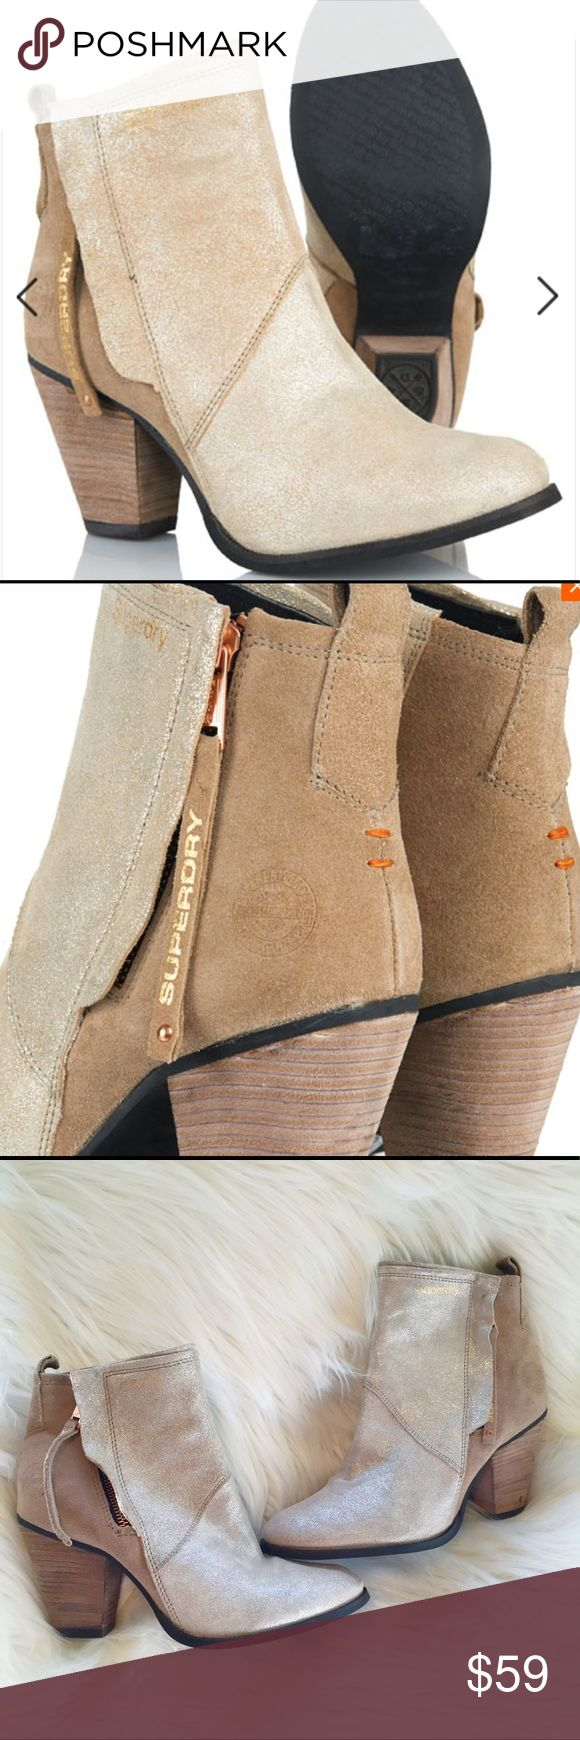 """Superdry Dillanger golddust booties Rose Gold pull Superdry women's Dillanger ankle boots with a cowboy heel and glitter finish to the front part of the boot. Side zip with rose gold hardware. Signature orange stitch detail and a gold embossed logo on the heel. Very good pre-loved condition – a couple of marks on the heels and faintly on the suede as pictured. Size 9. 3.25"""" heel Superdry Shoes Ankle Boots & Booties"""